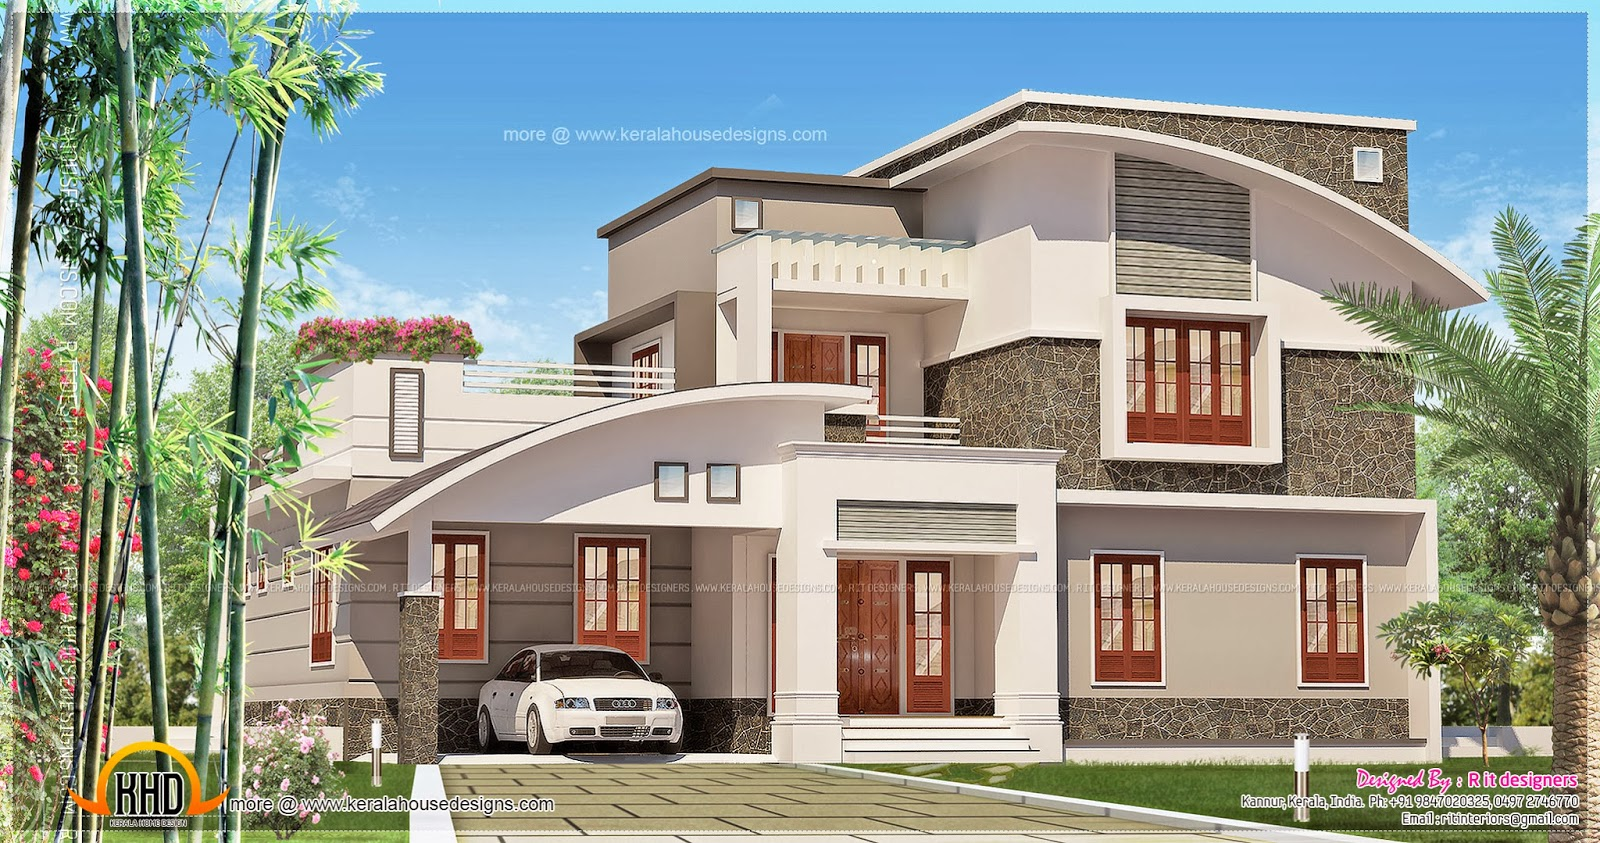 3 bedroom contemporary mix house exterior kerala home for Best house design 2014